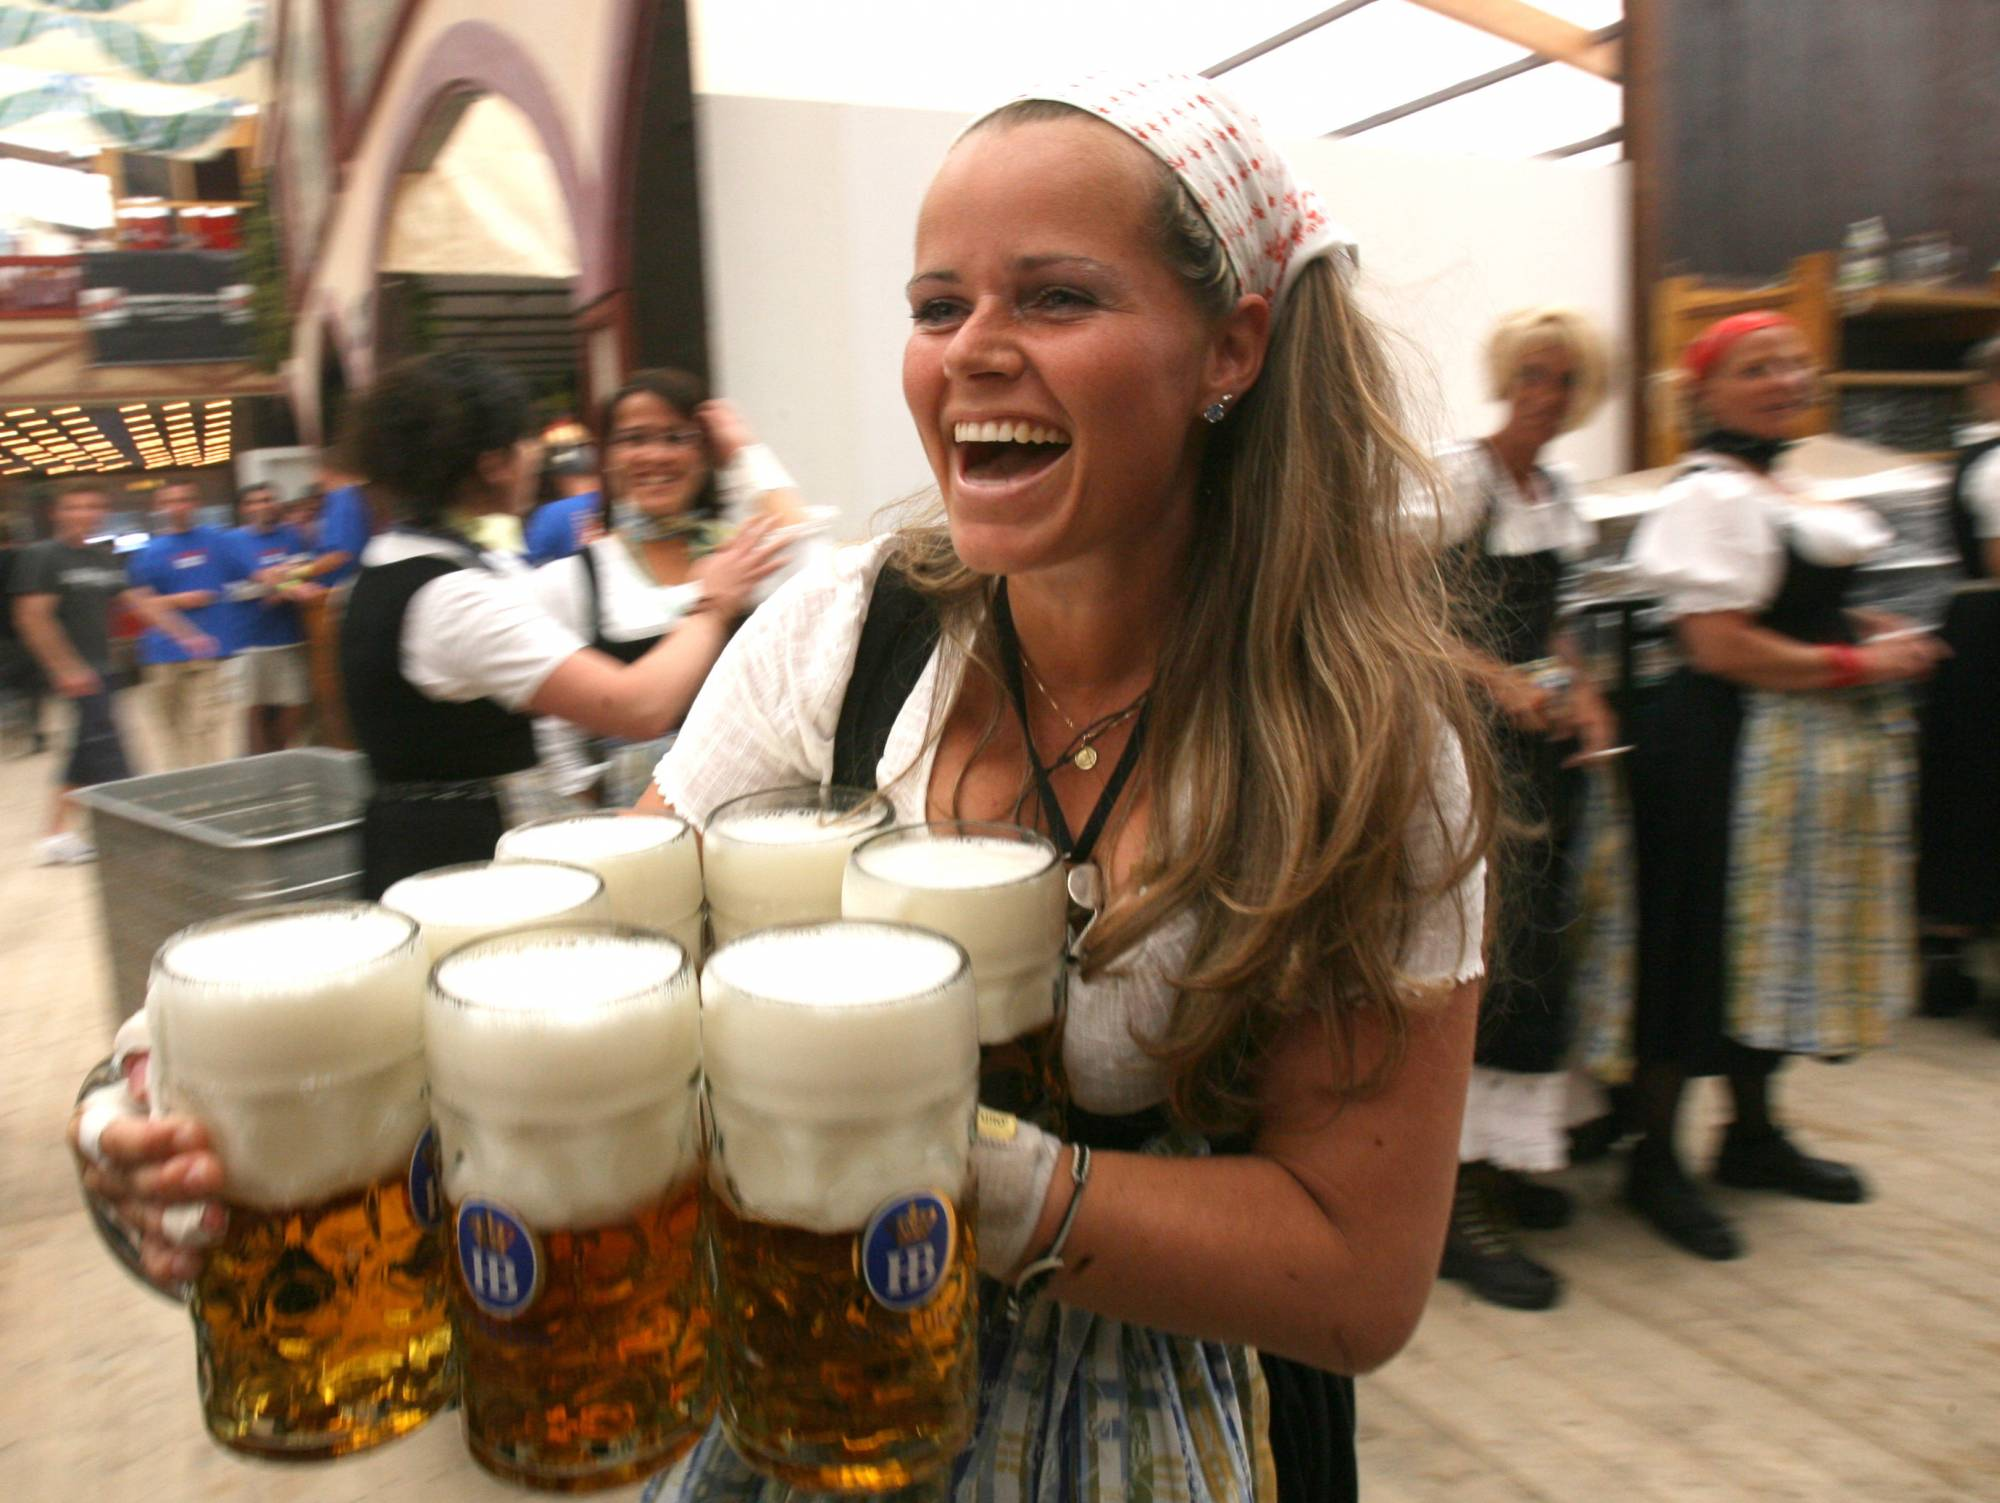 Beer Will Cost More at This Year's Oktoberfest in Munich